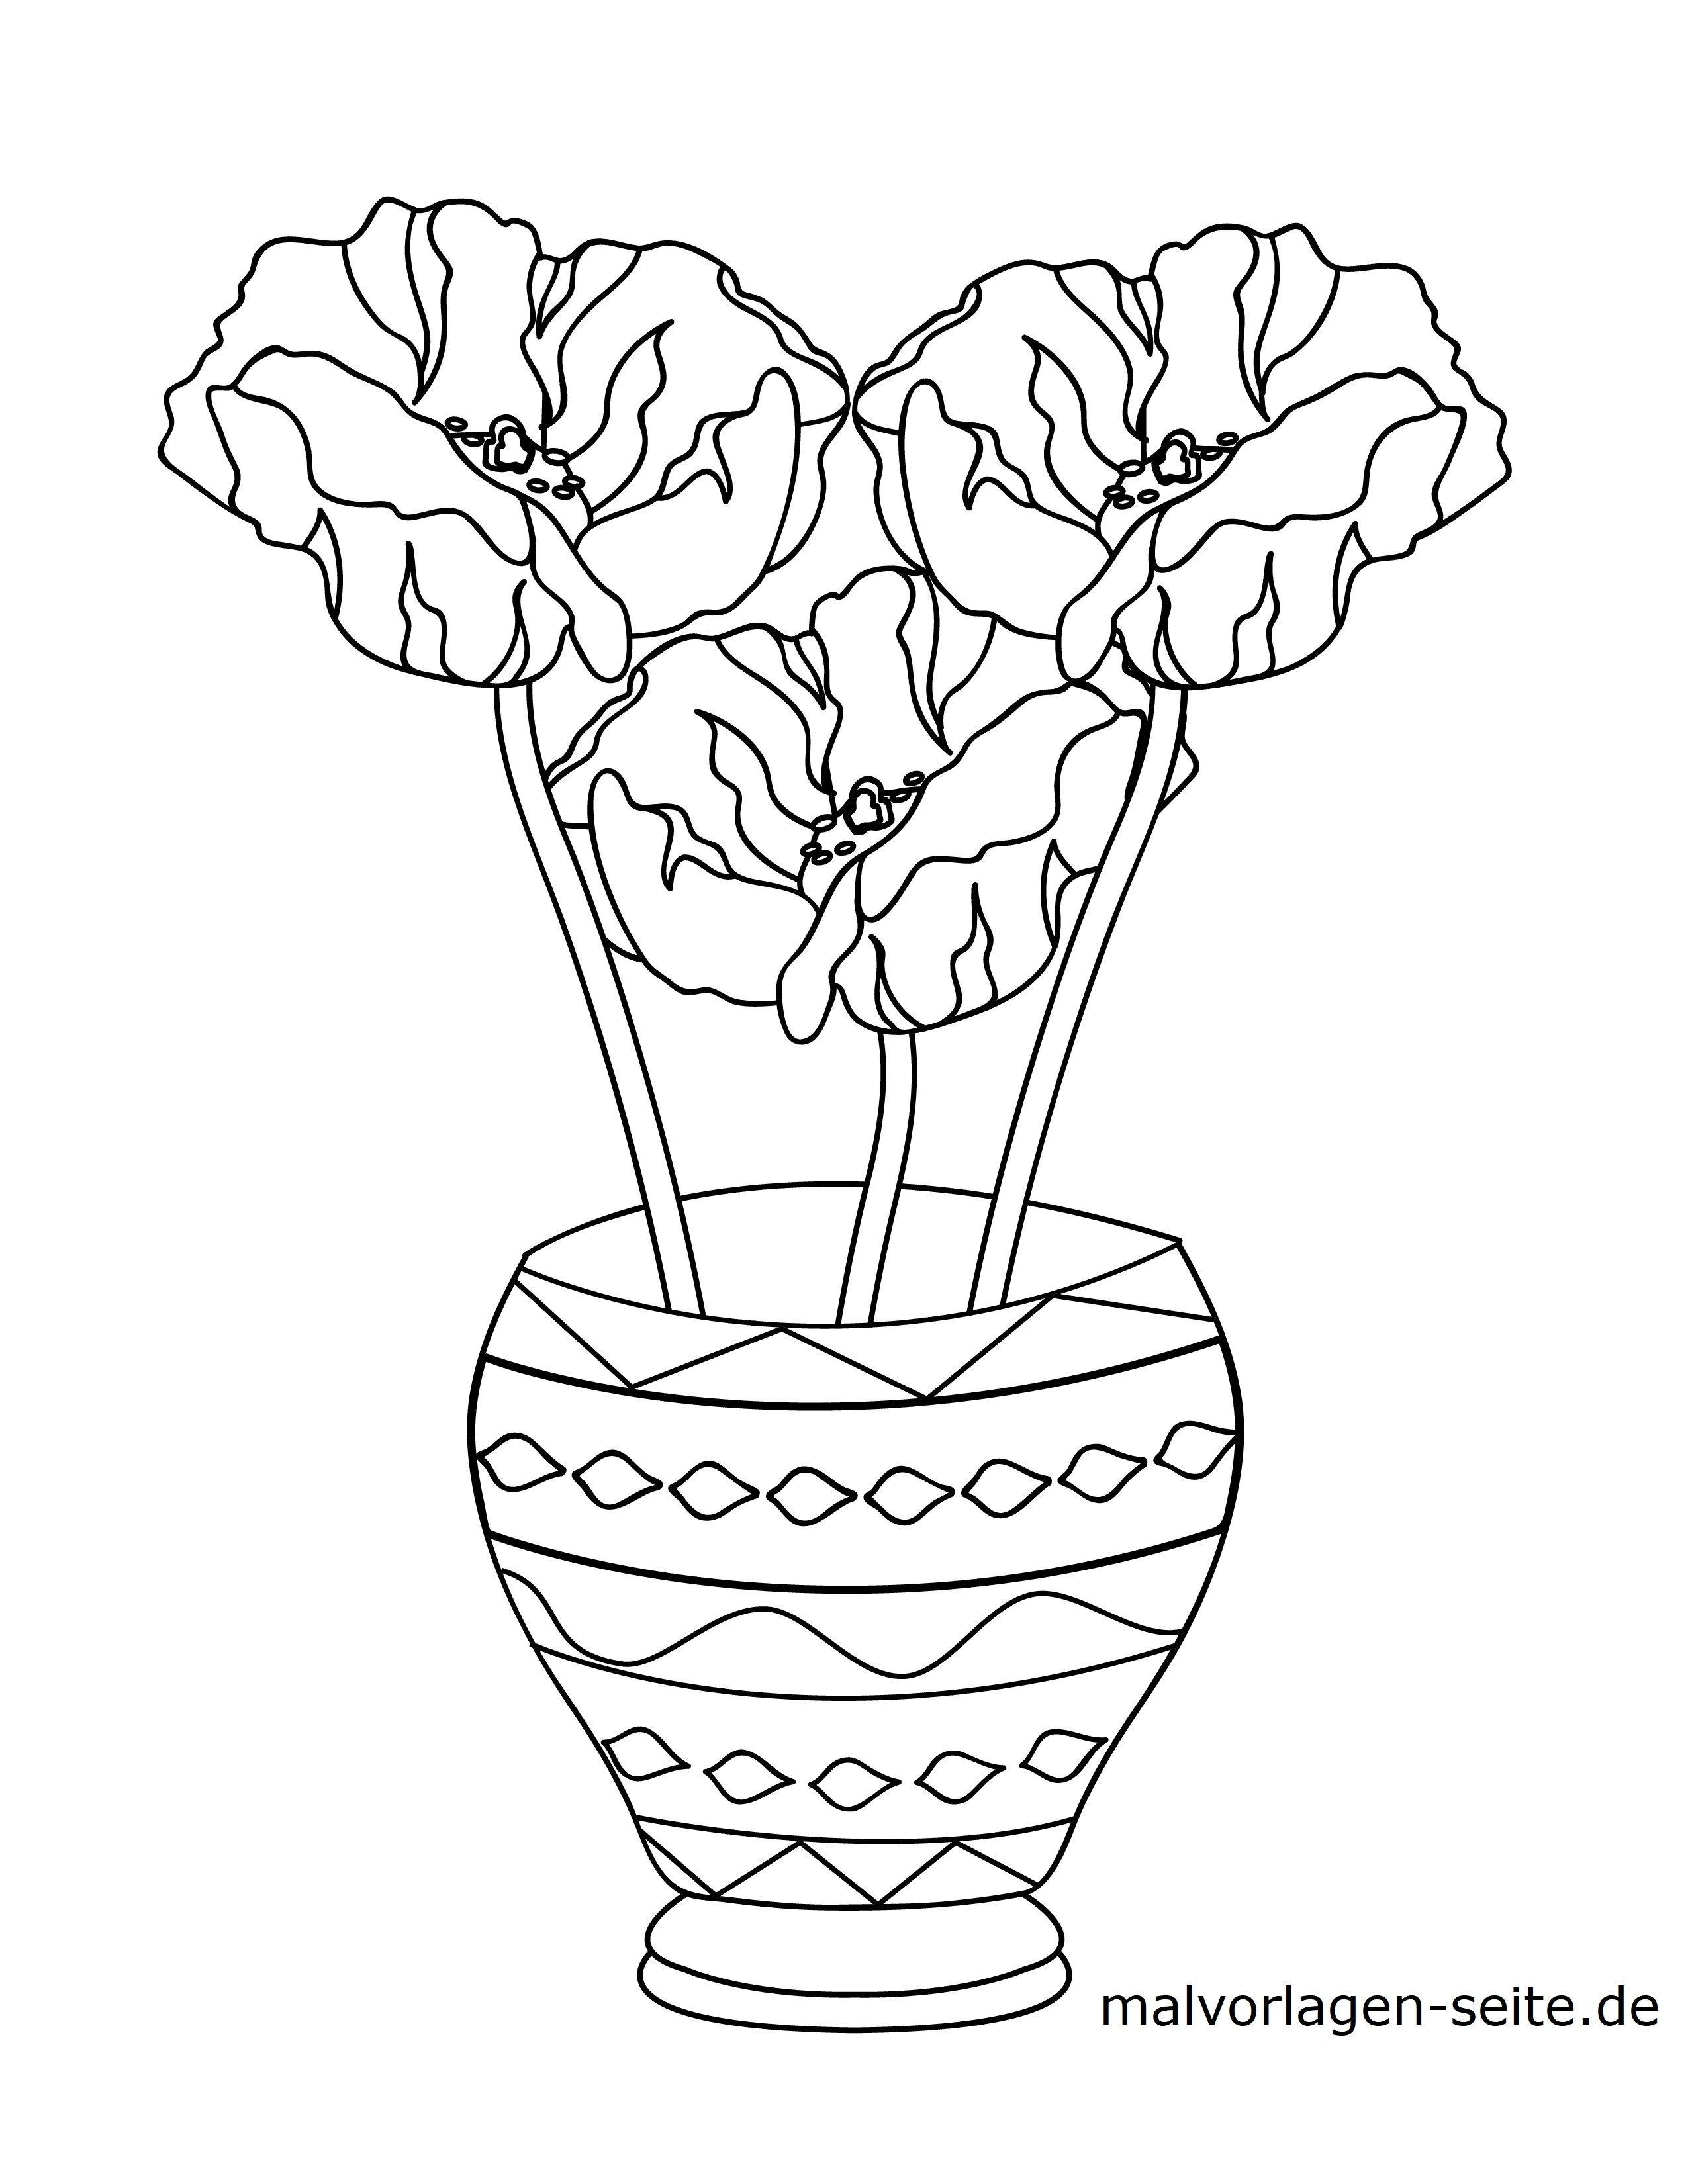 Coloring page flowers in a vase - free coloring pages